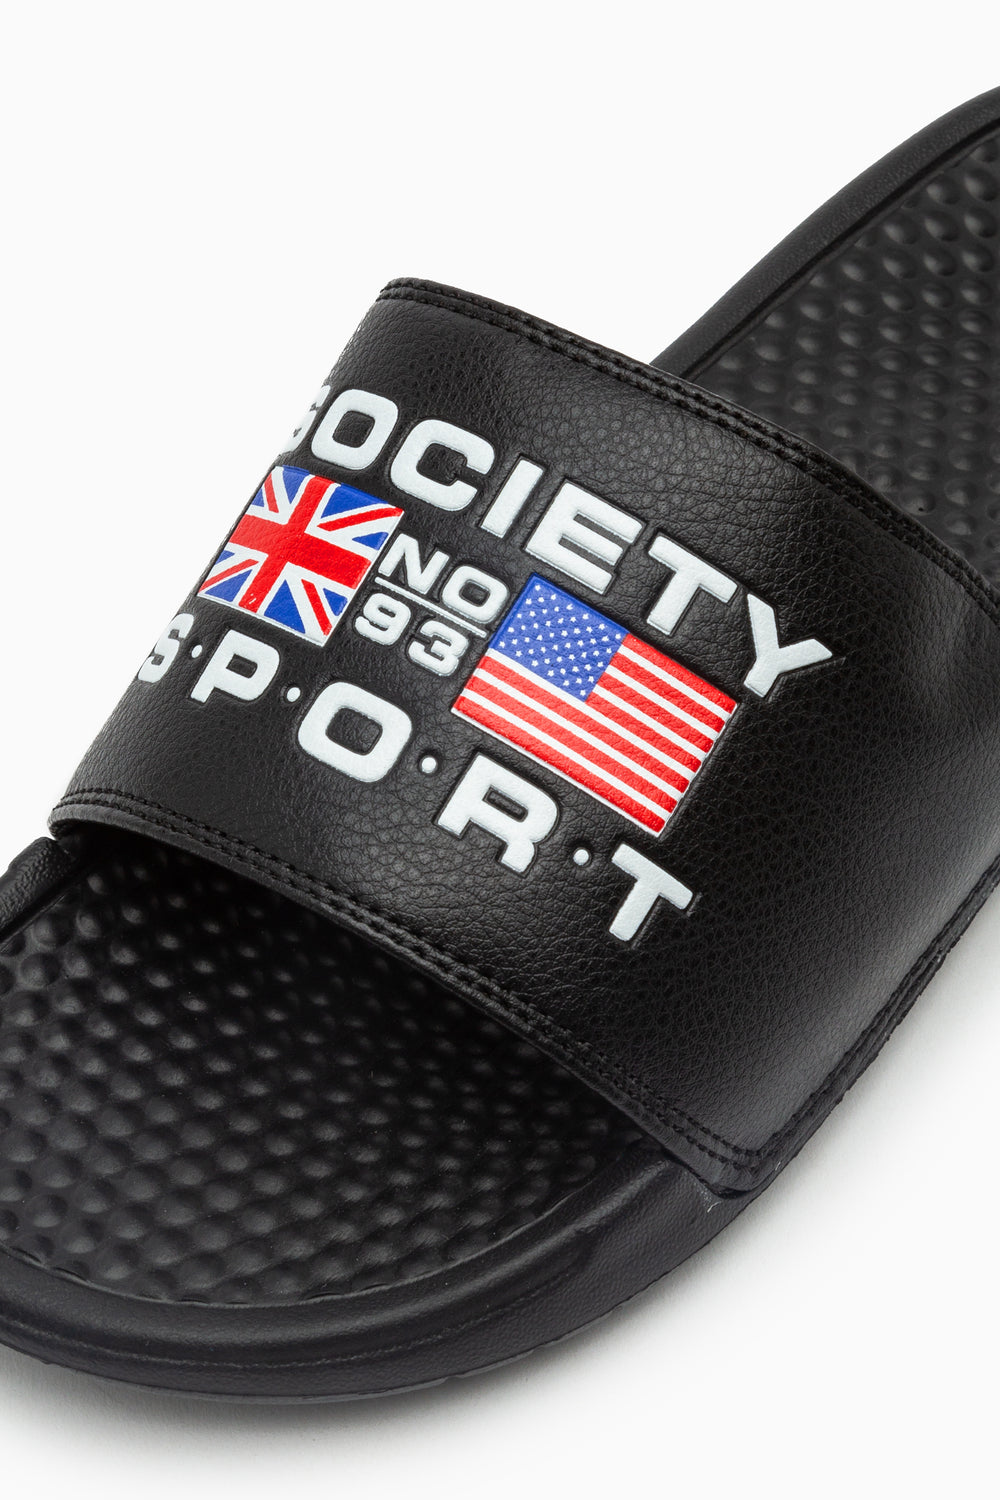 SOCIETY SPORT BLACK SLIDER